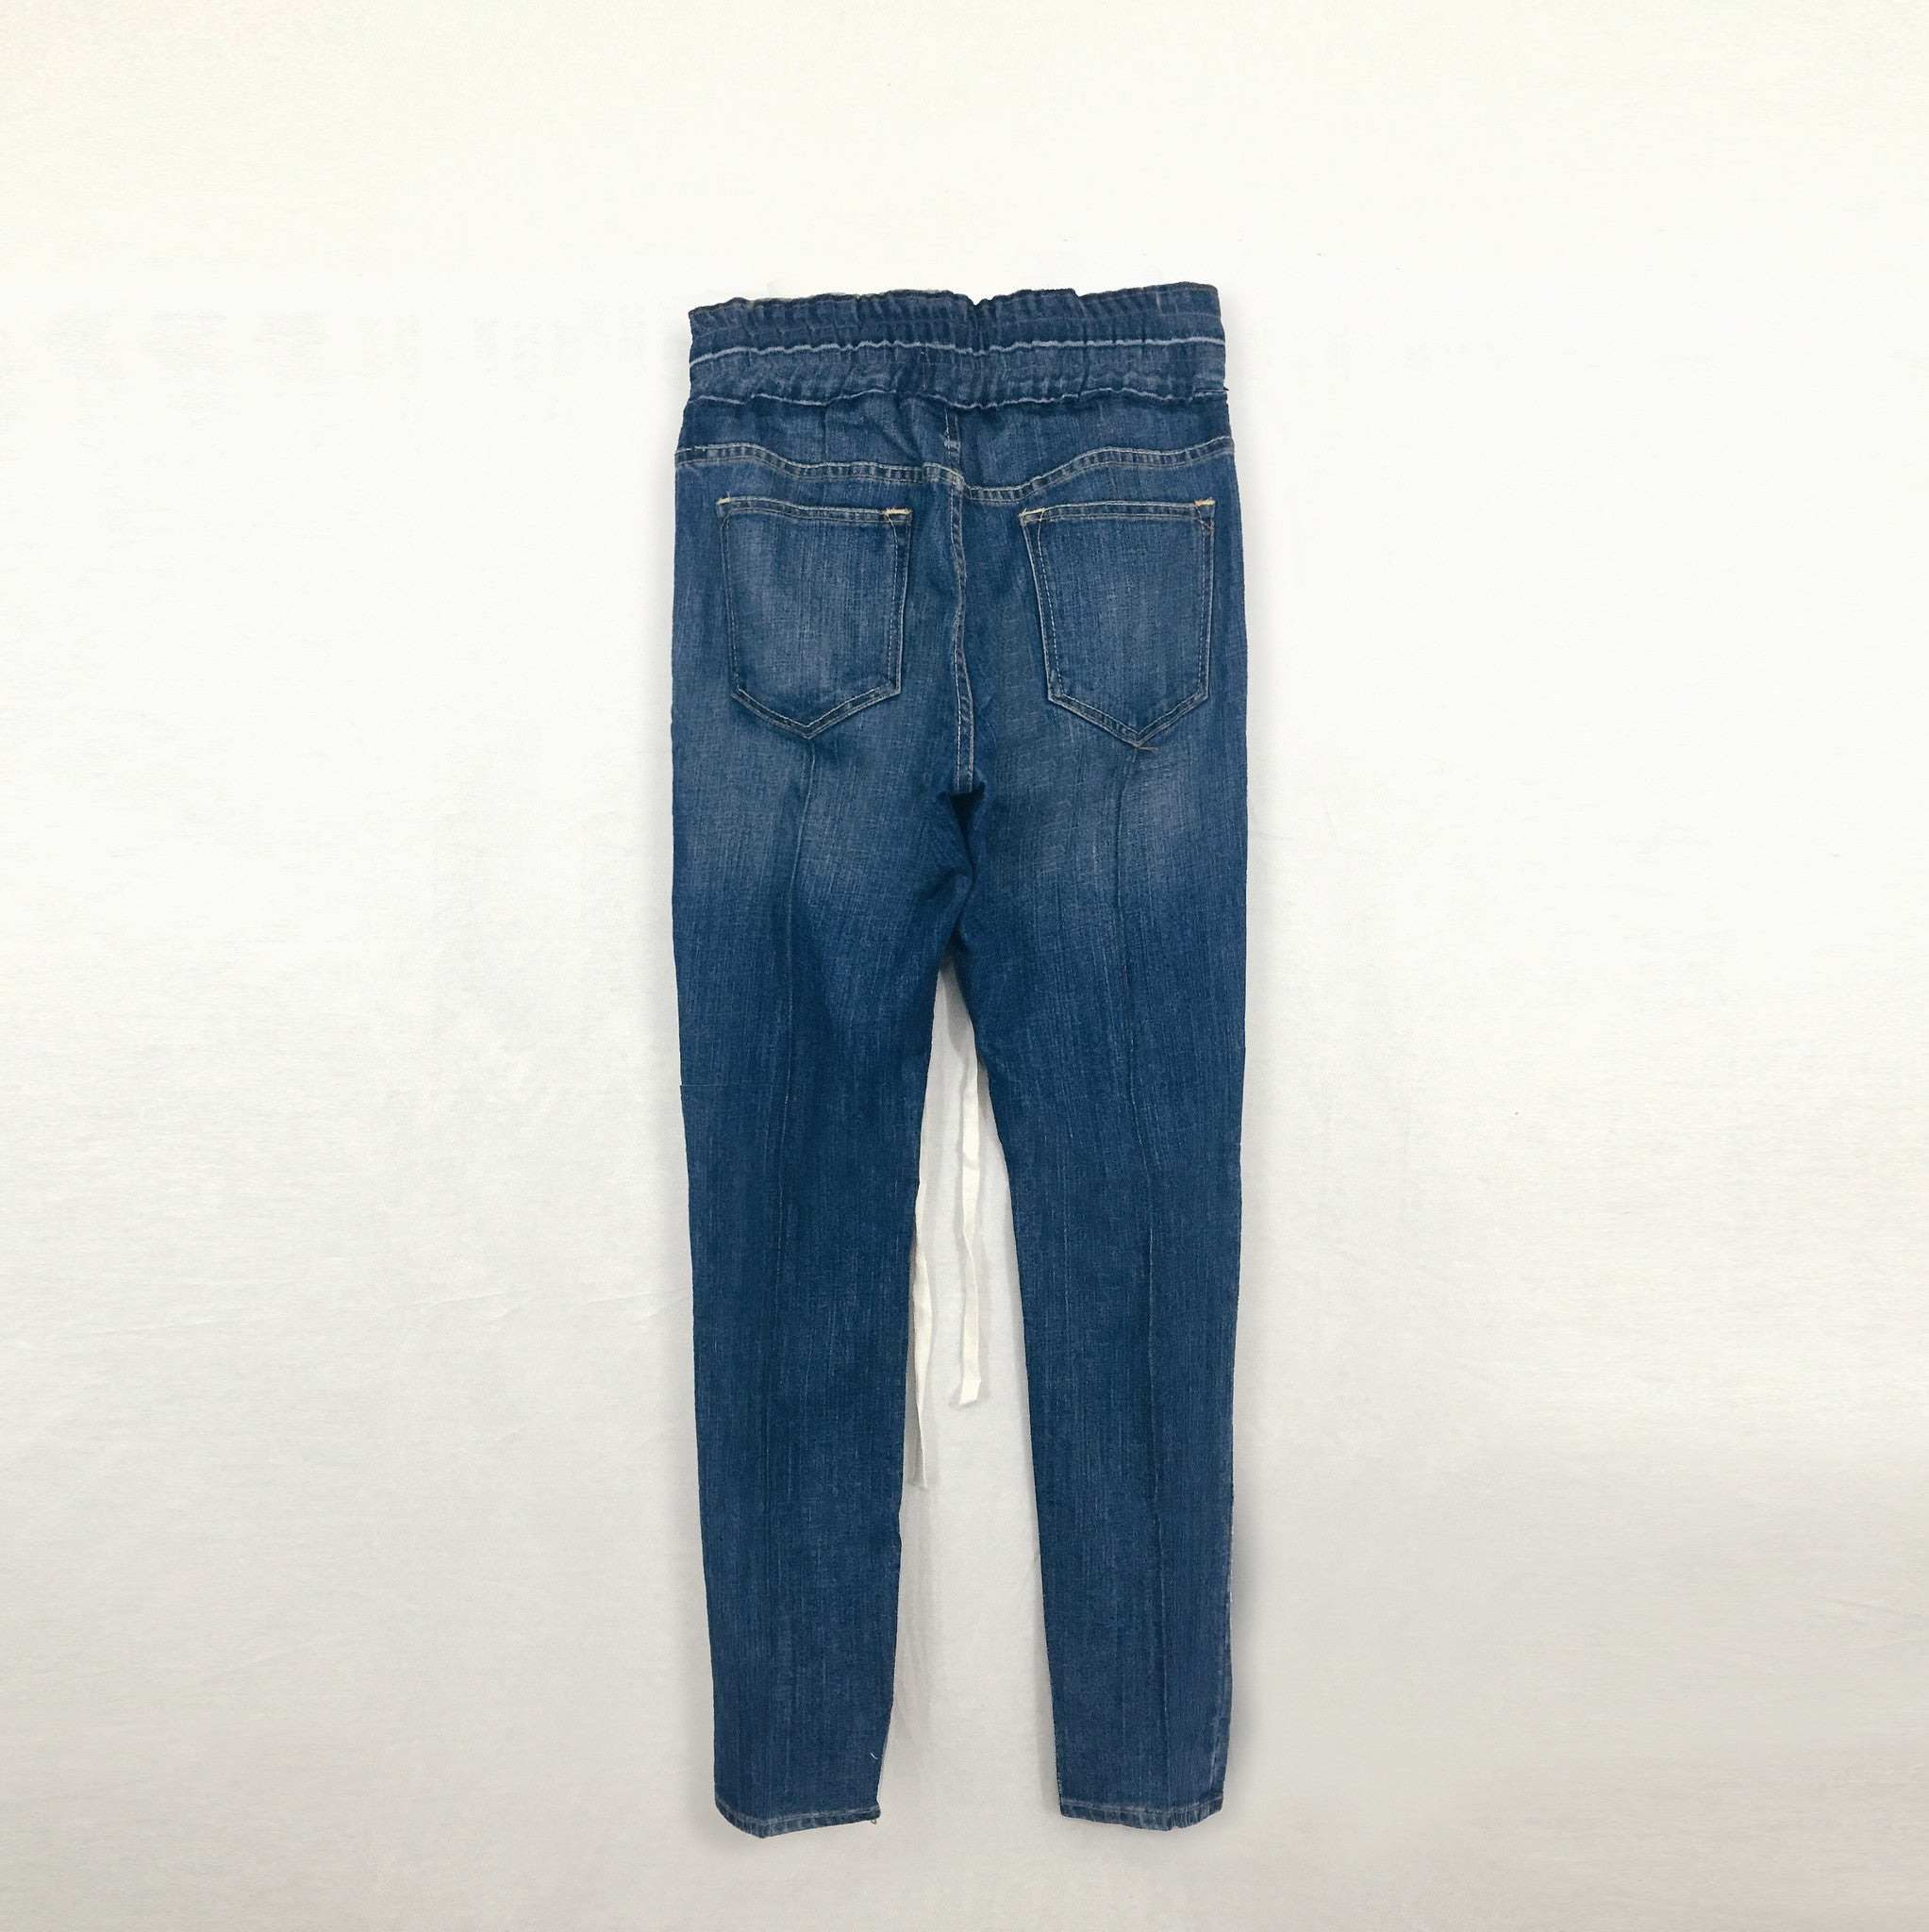 Signature Denim in Blue Wash